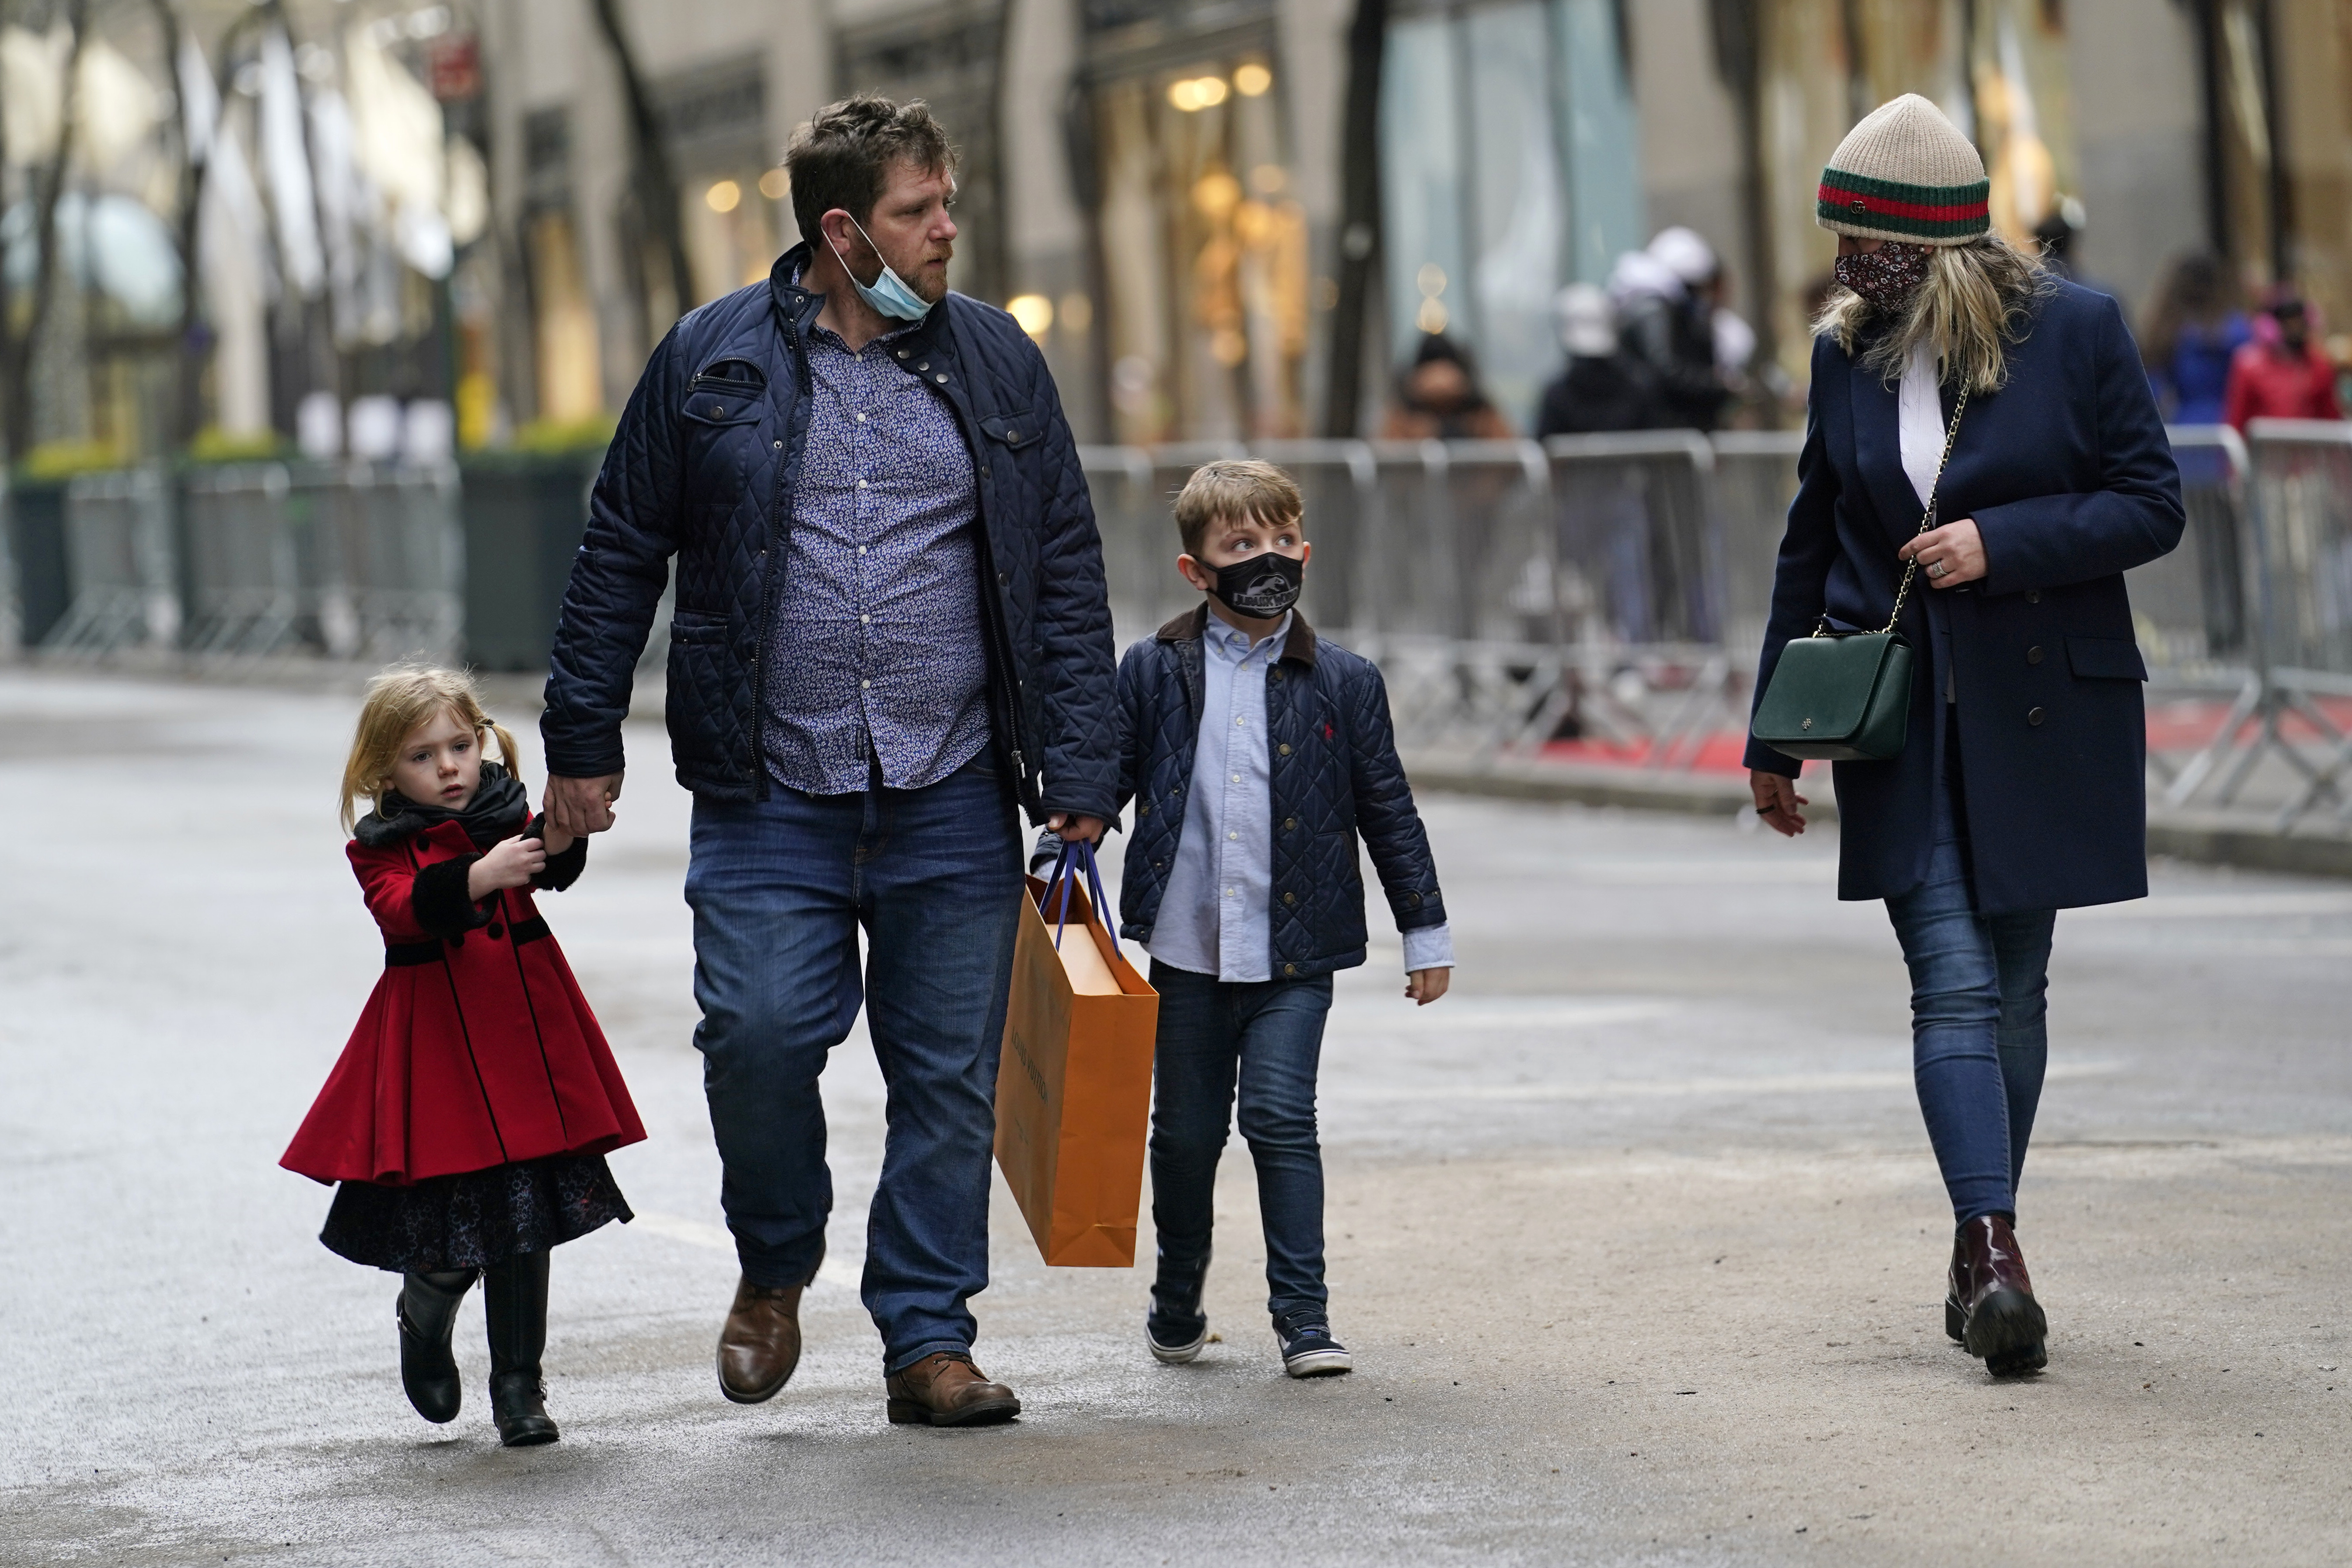 People walk down an empty street after shopping on Christmas Eve, Thursday, Dec. 24, 2020, in New York. (AP Photo/Kathy Willens)